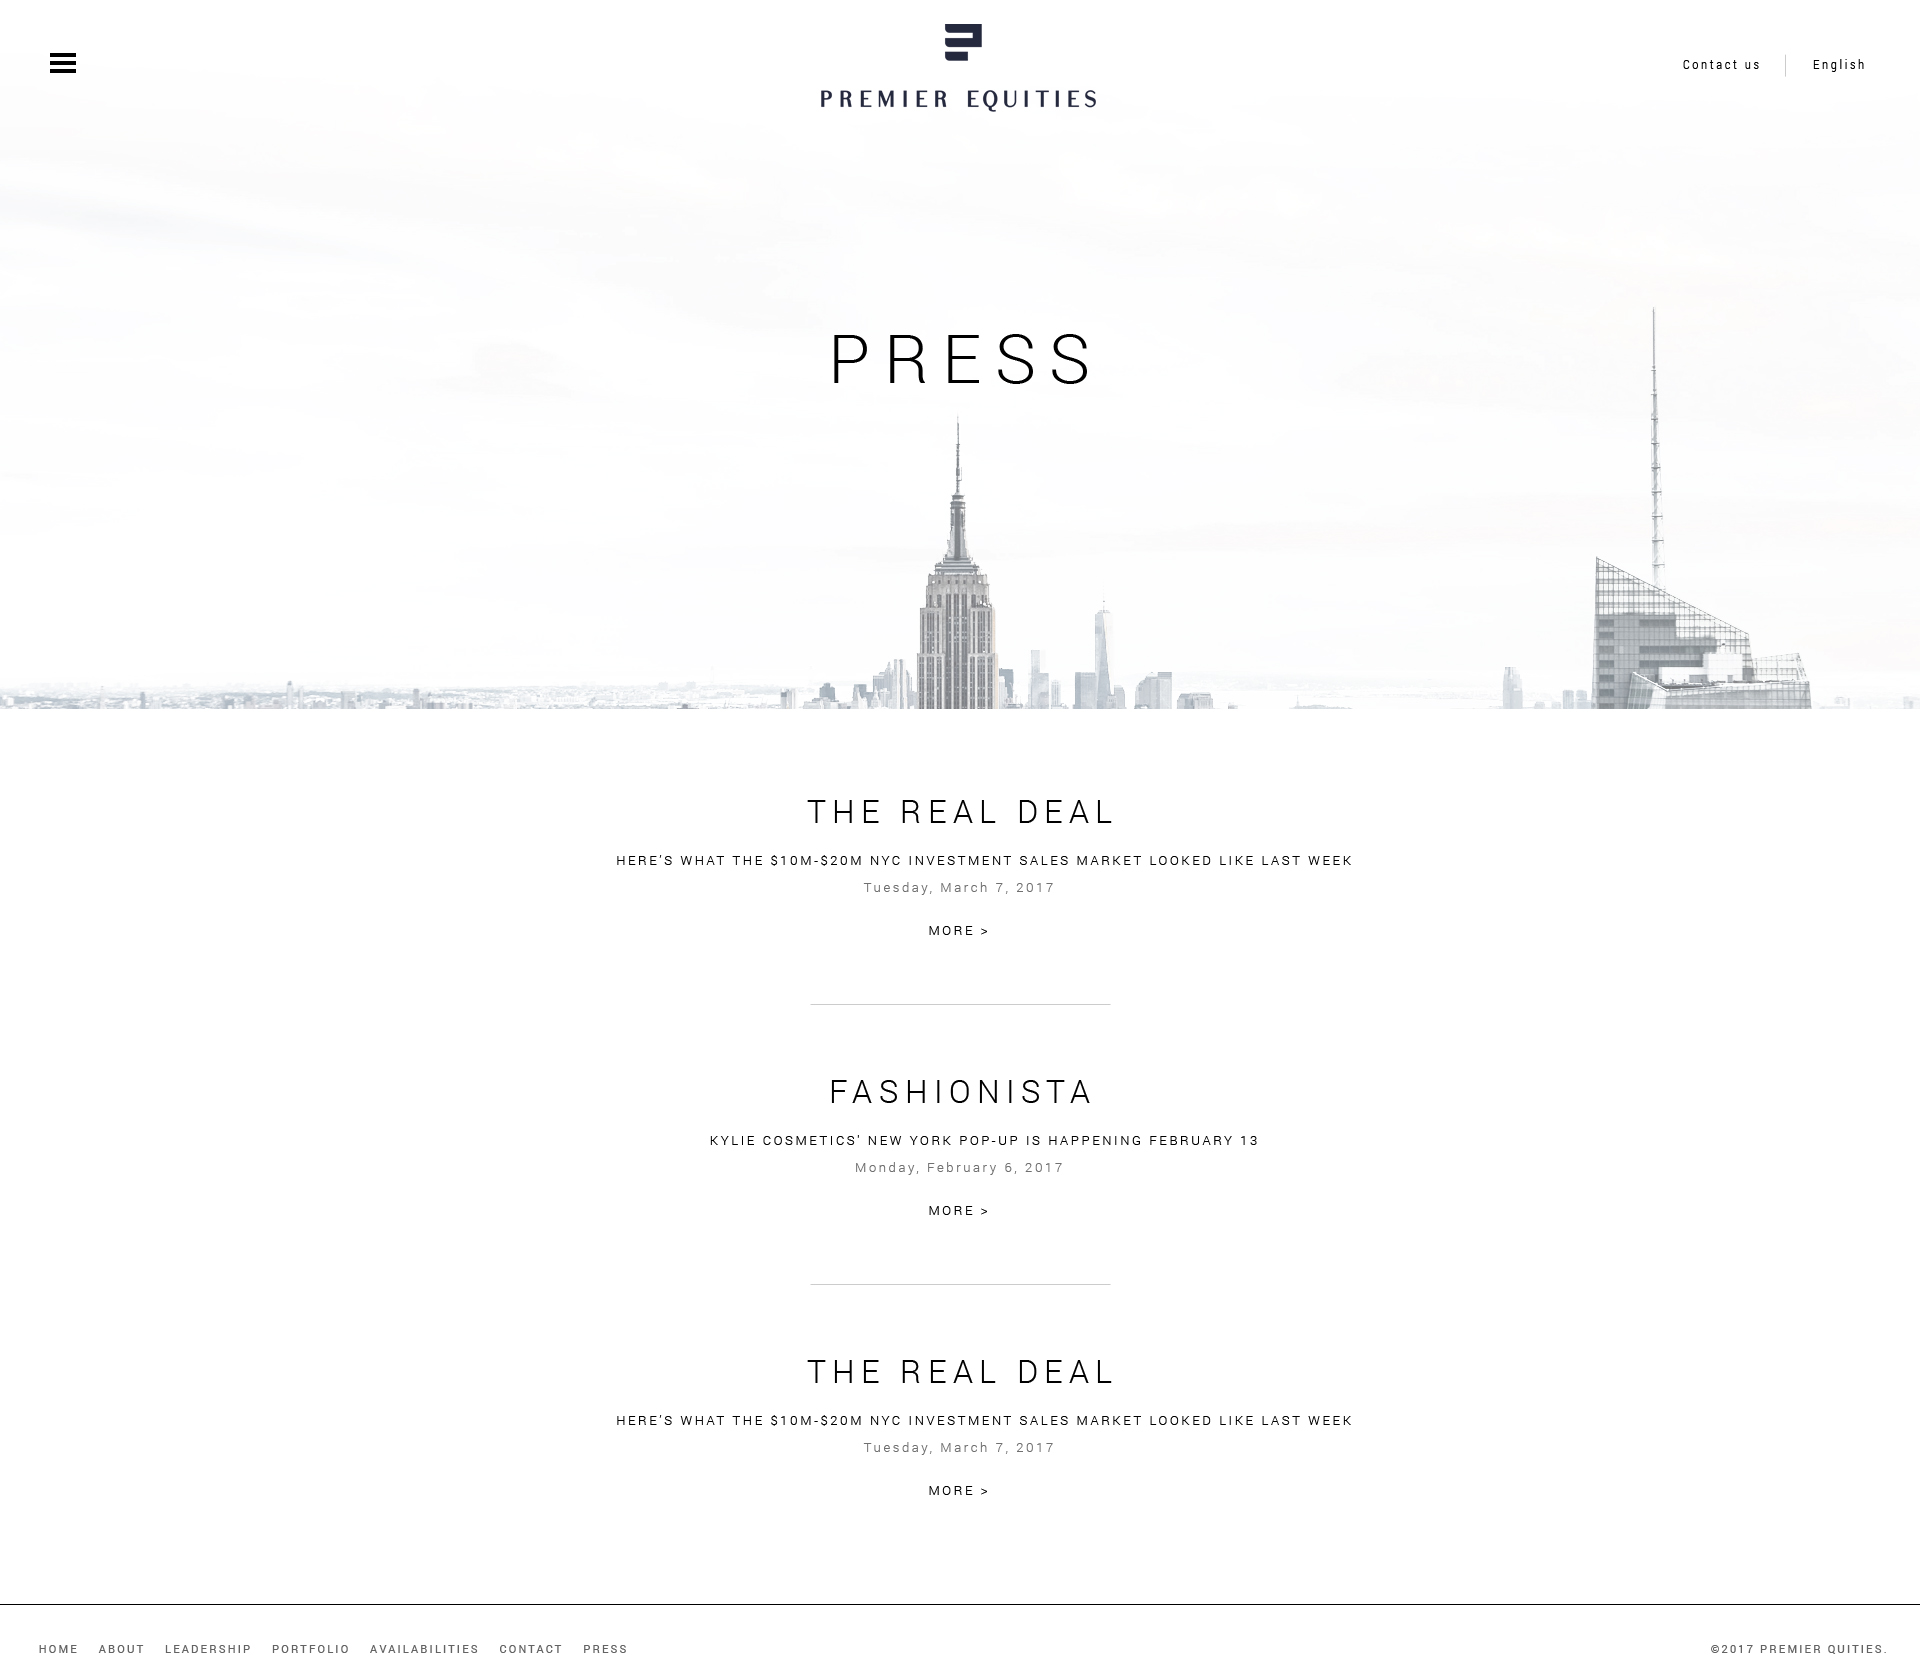 Premier Equities – press view